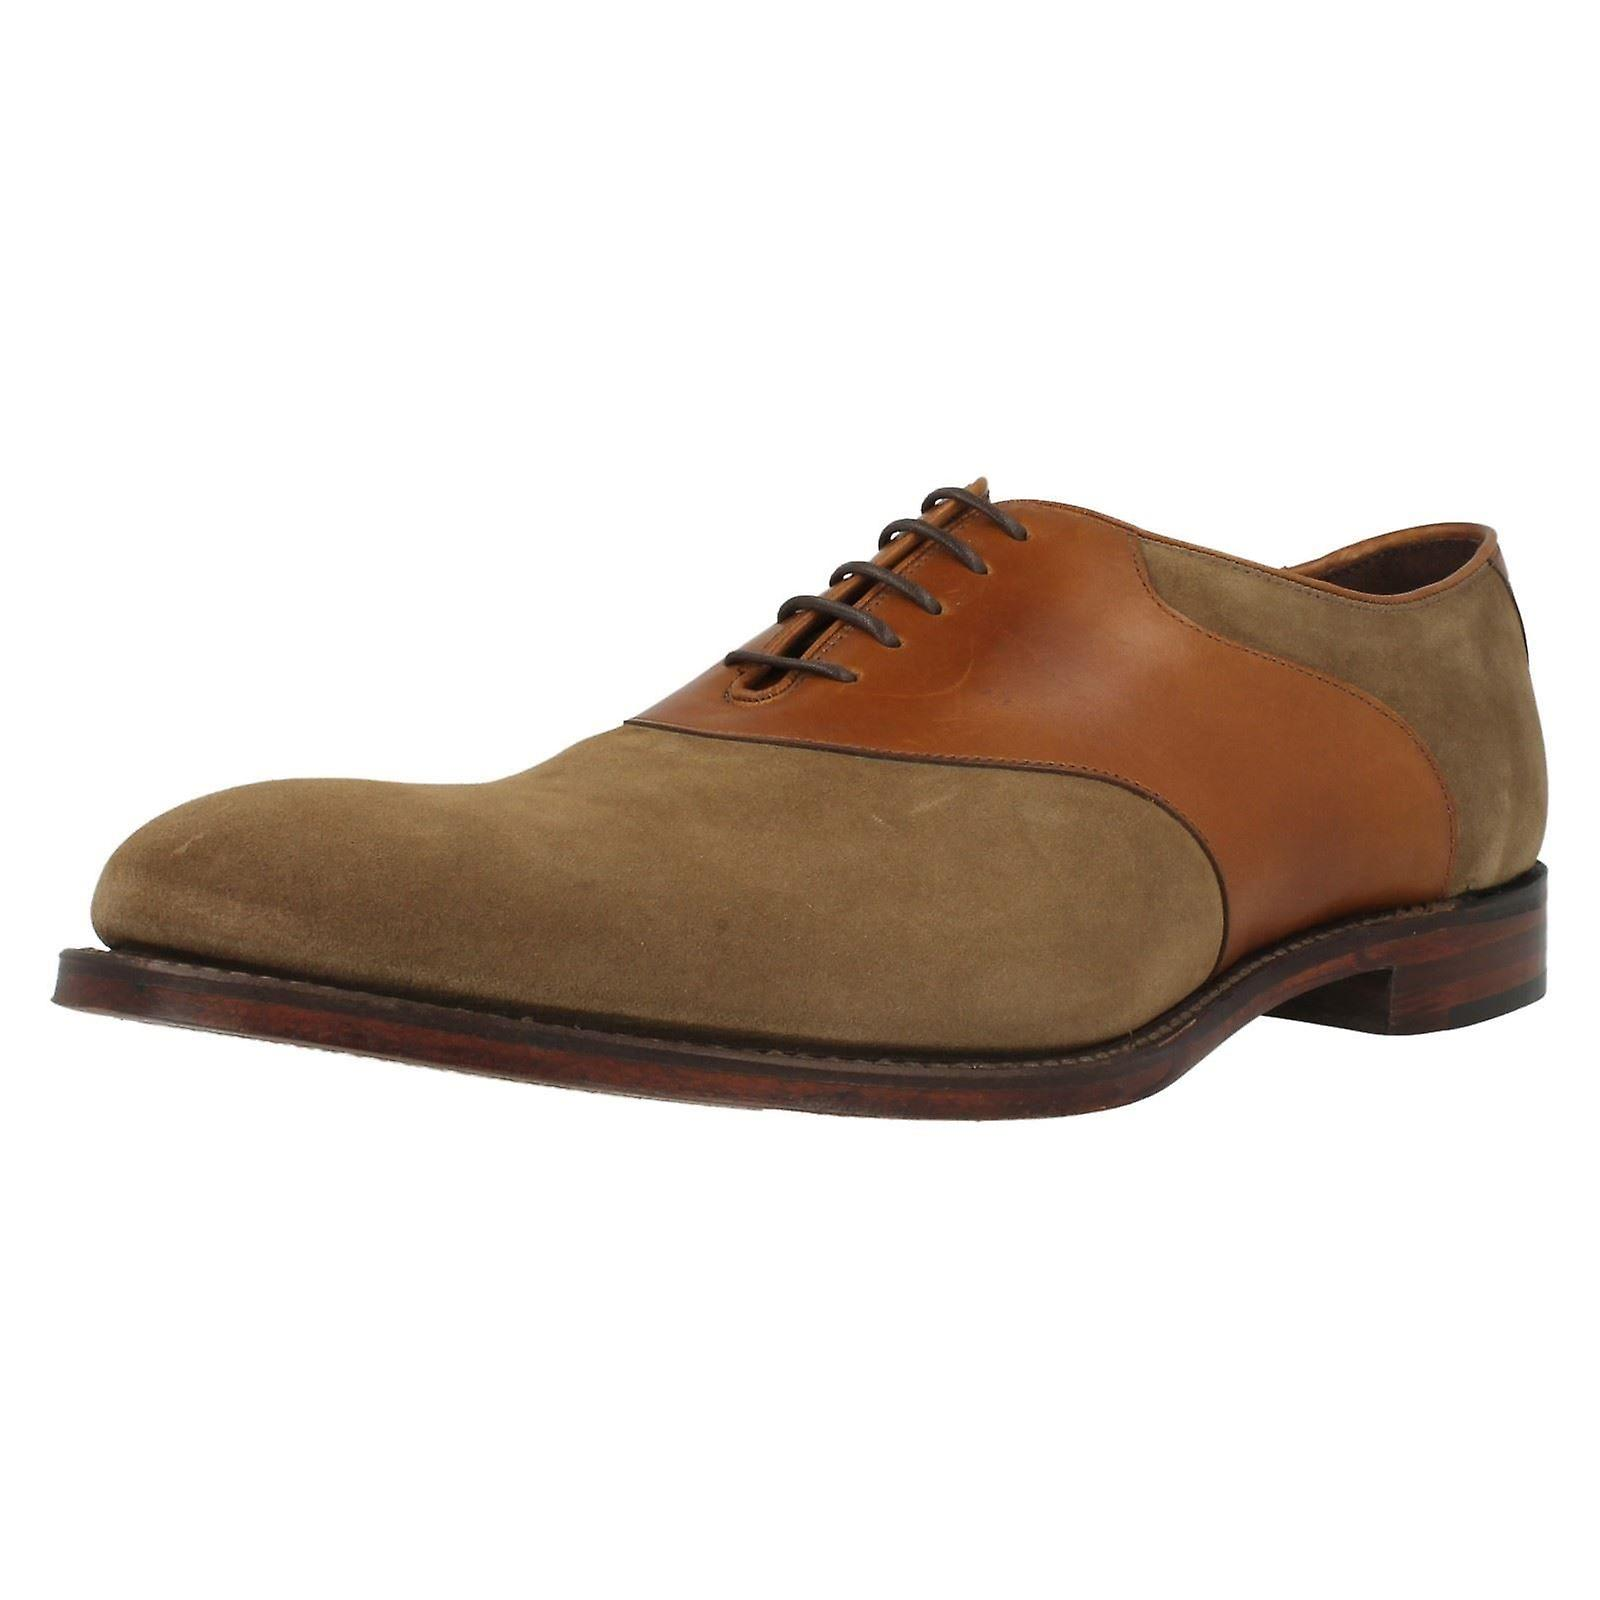 Mens Loake 1880 formale Schuhe Asquith